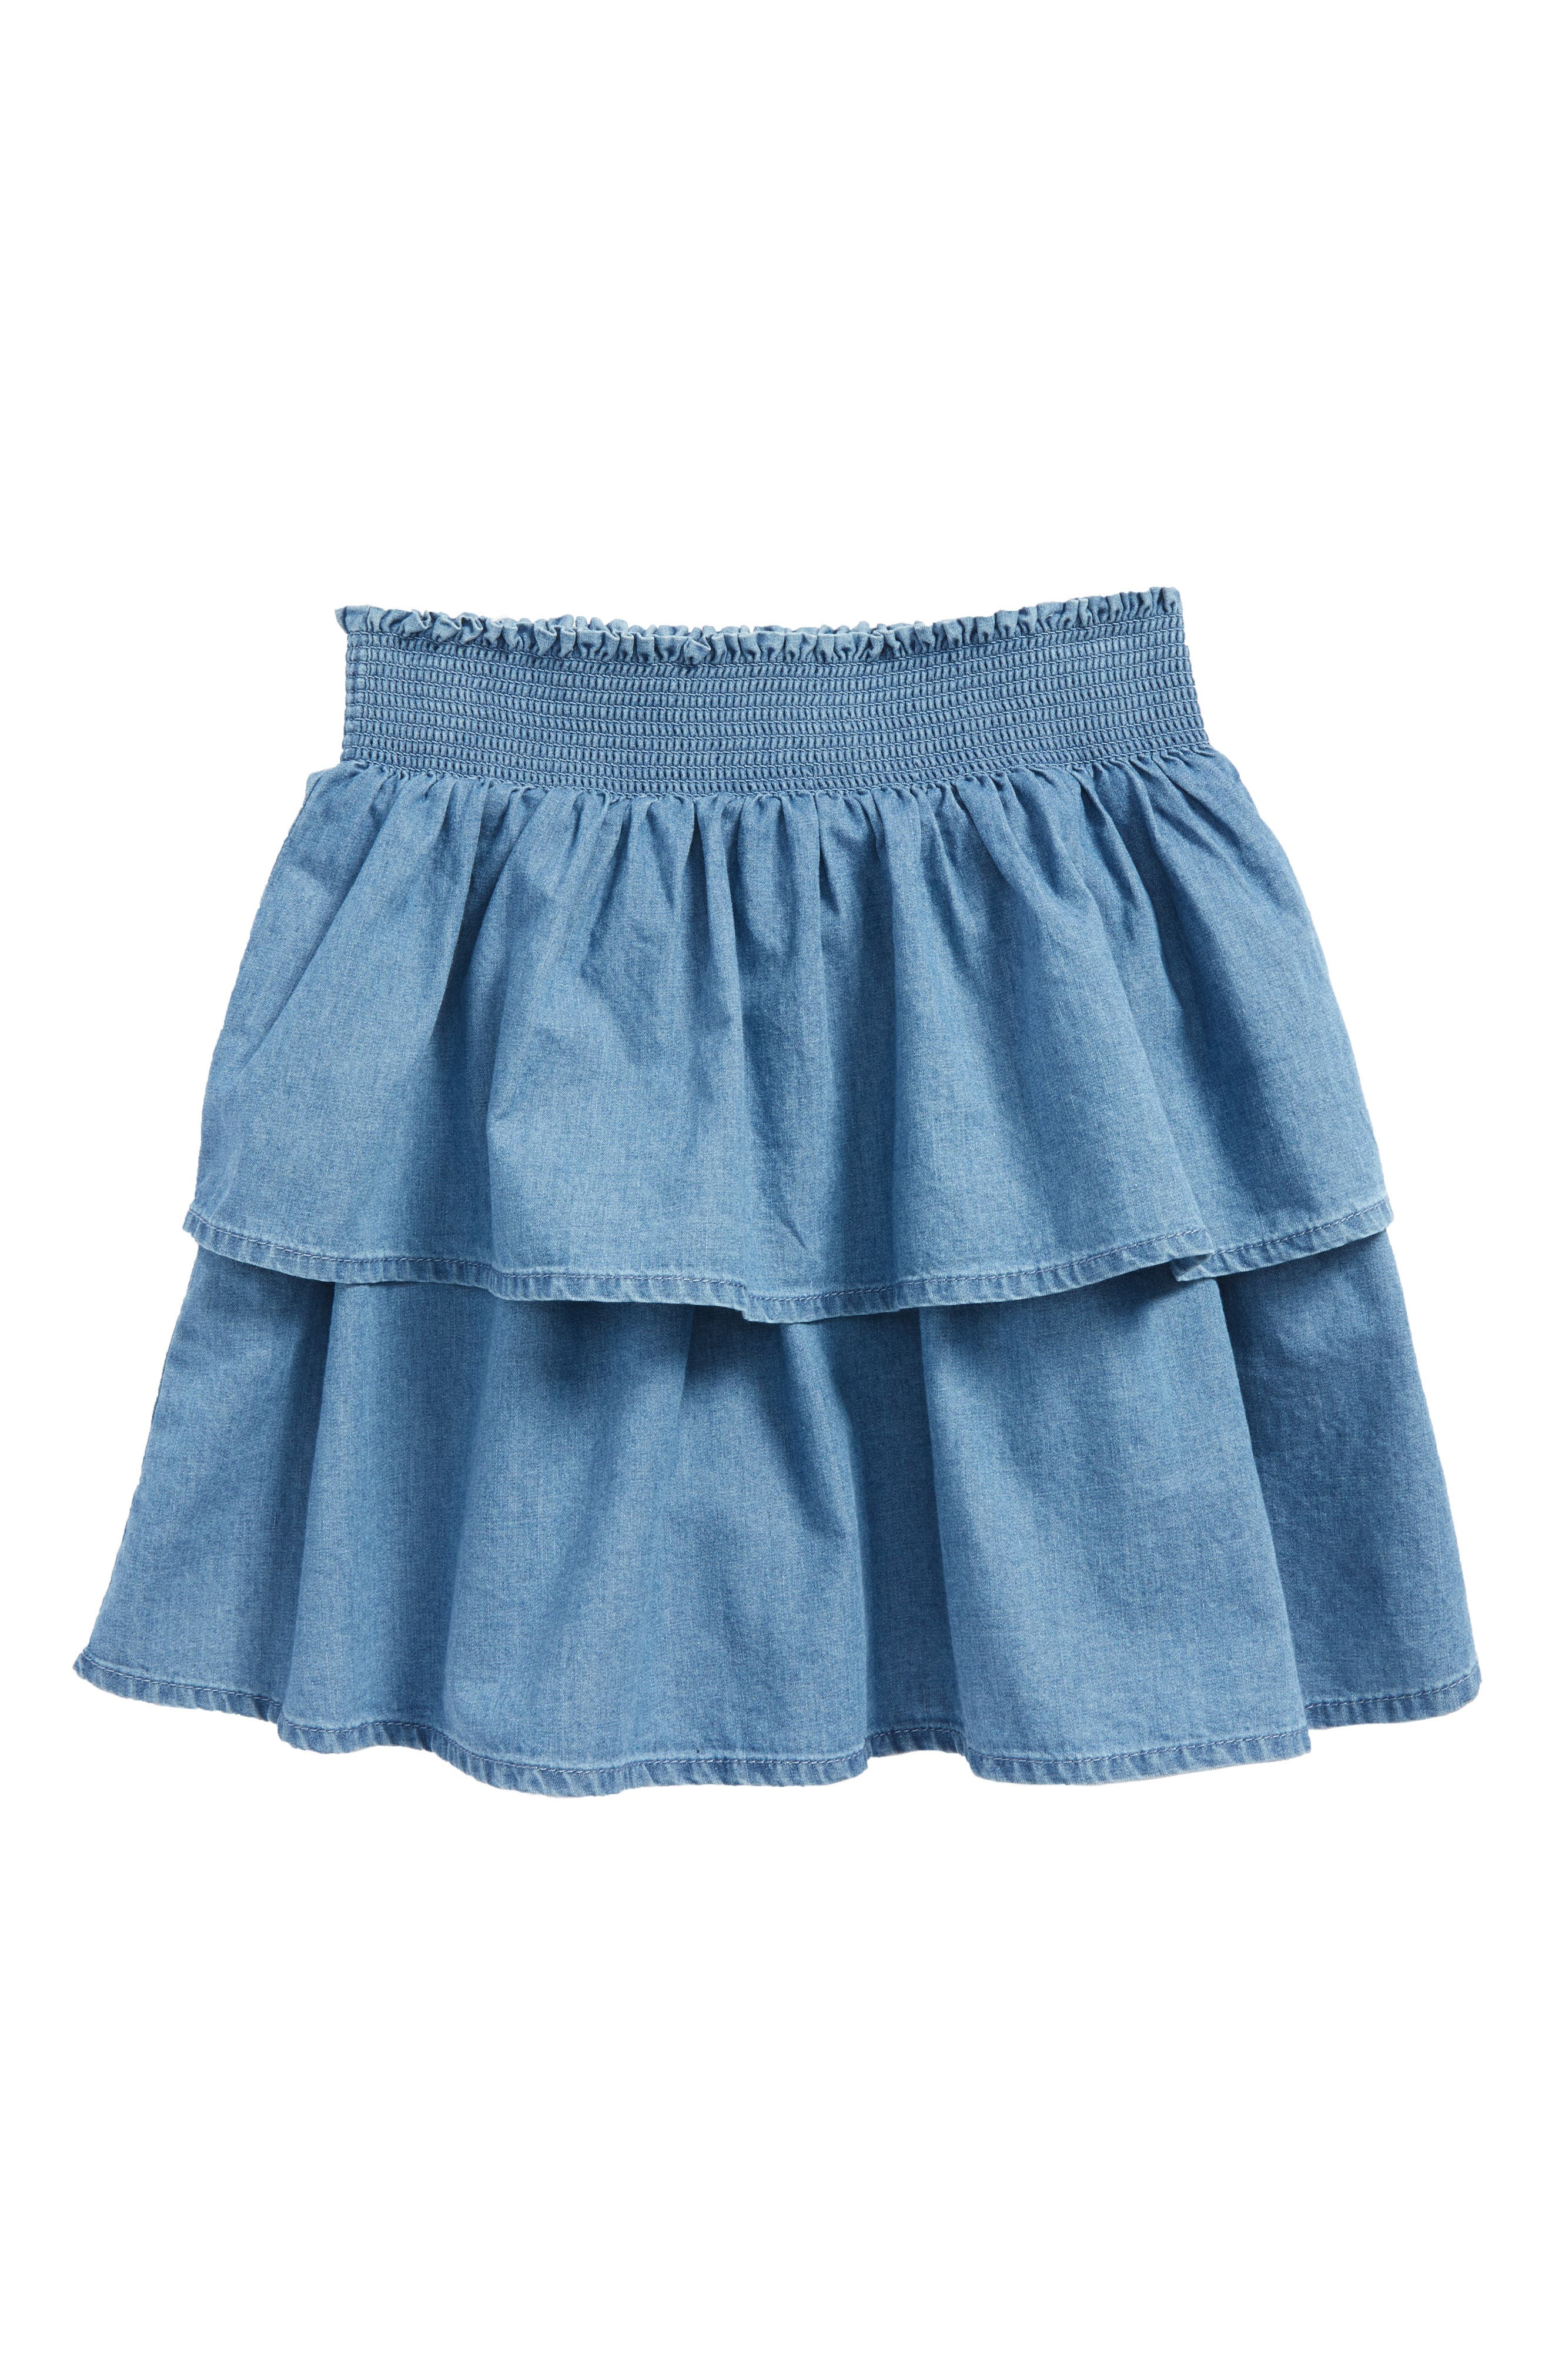 Ruffle Denim Skirt,                             Main thumbnail 1, color,                             409